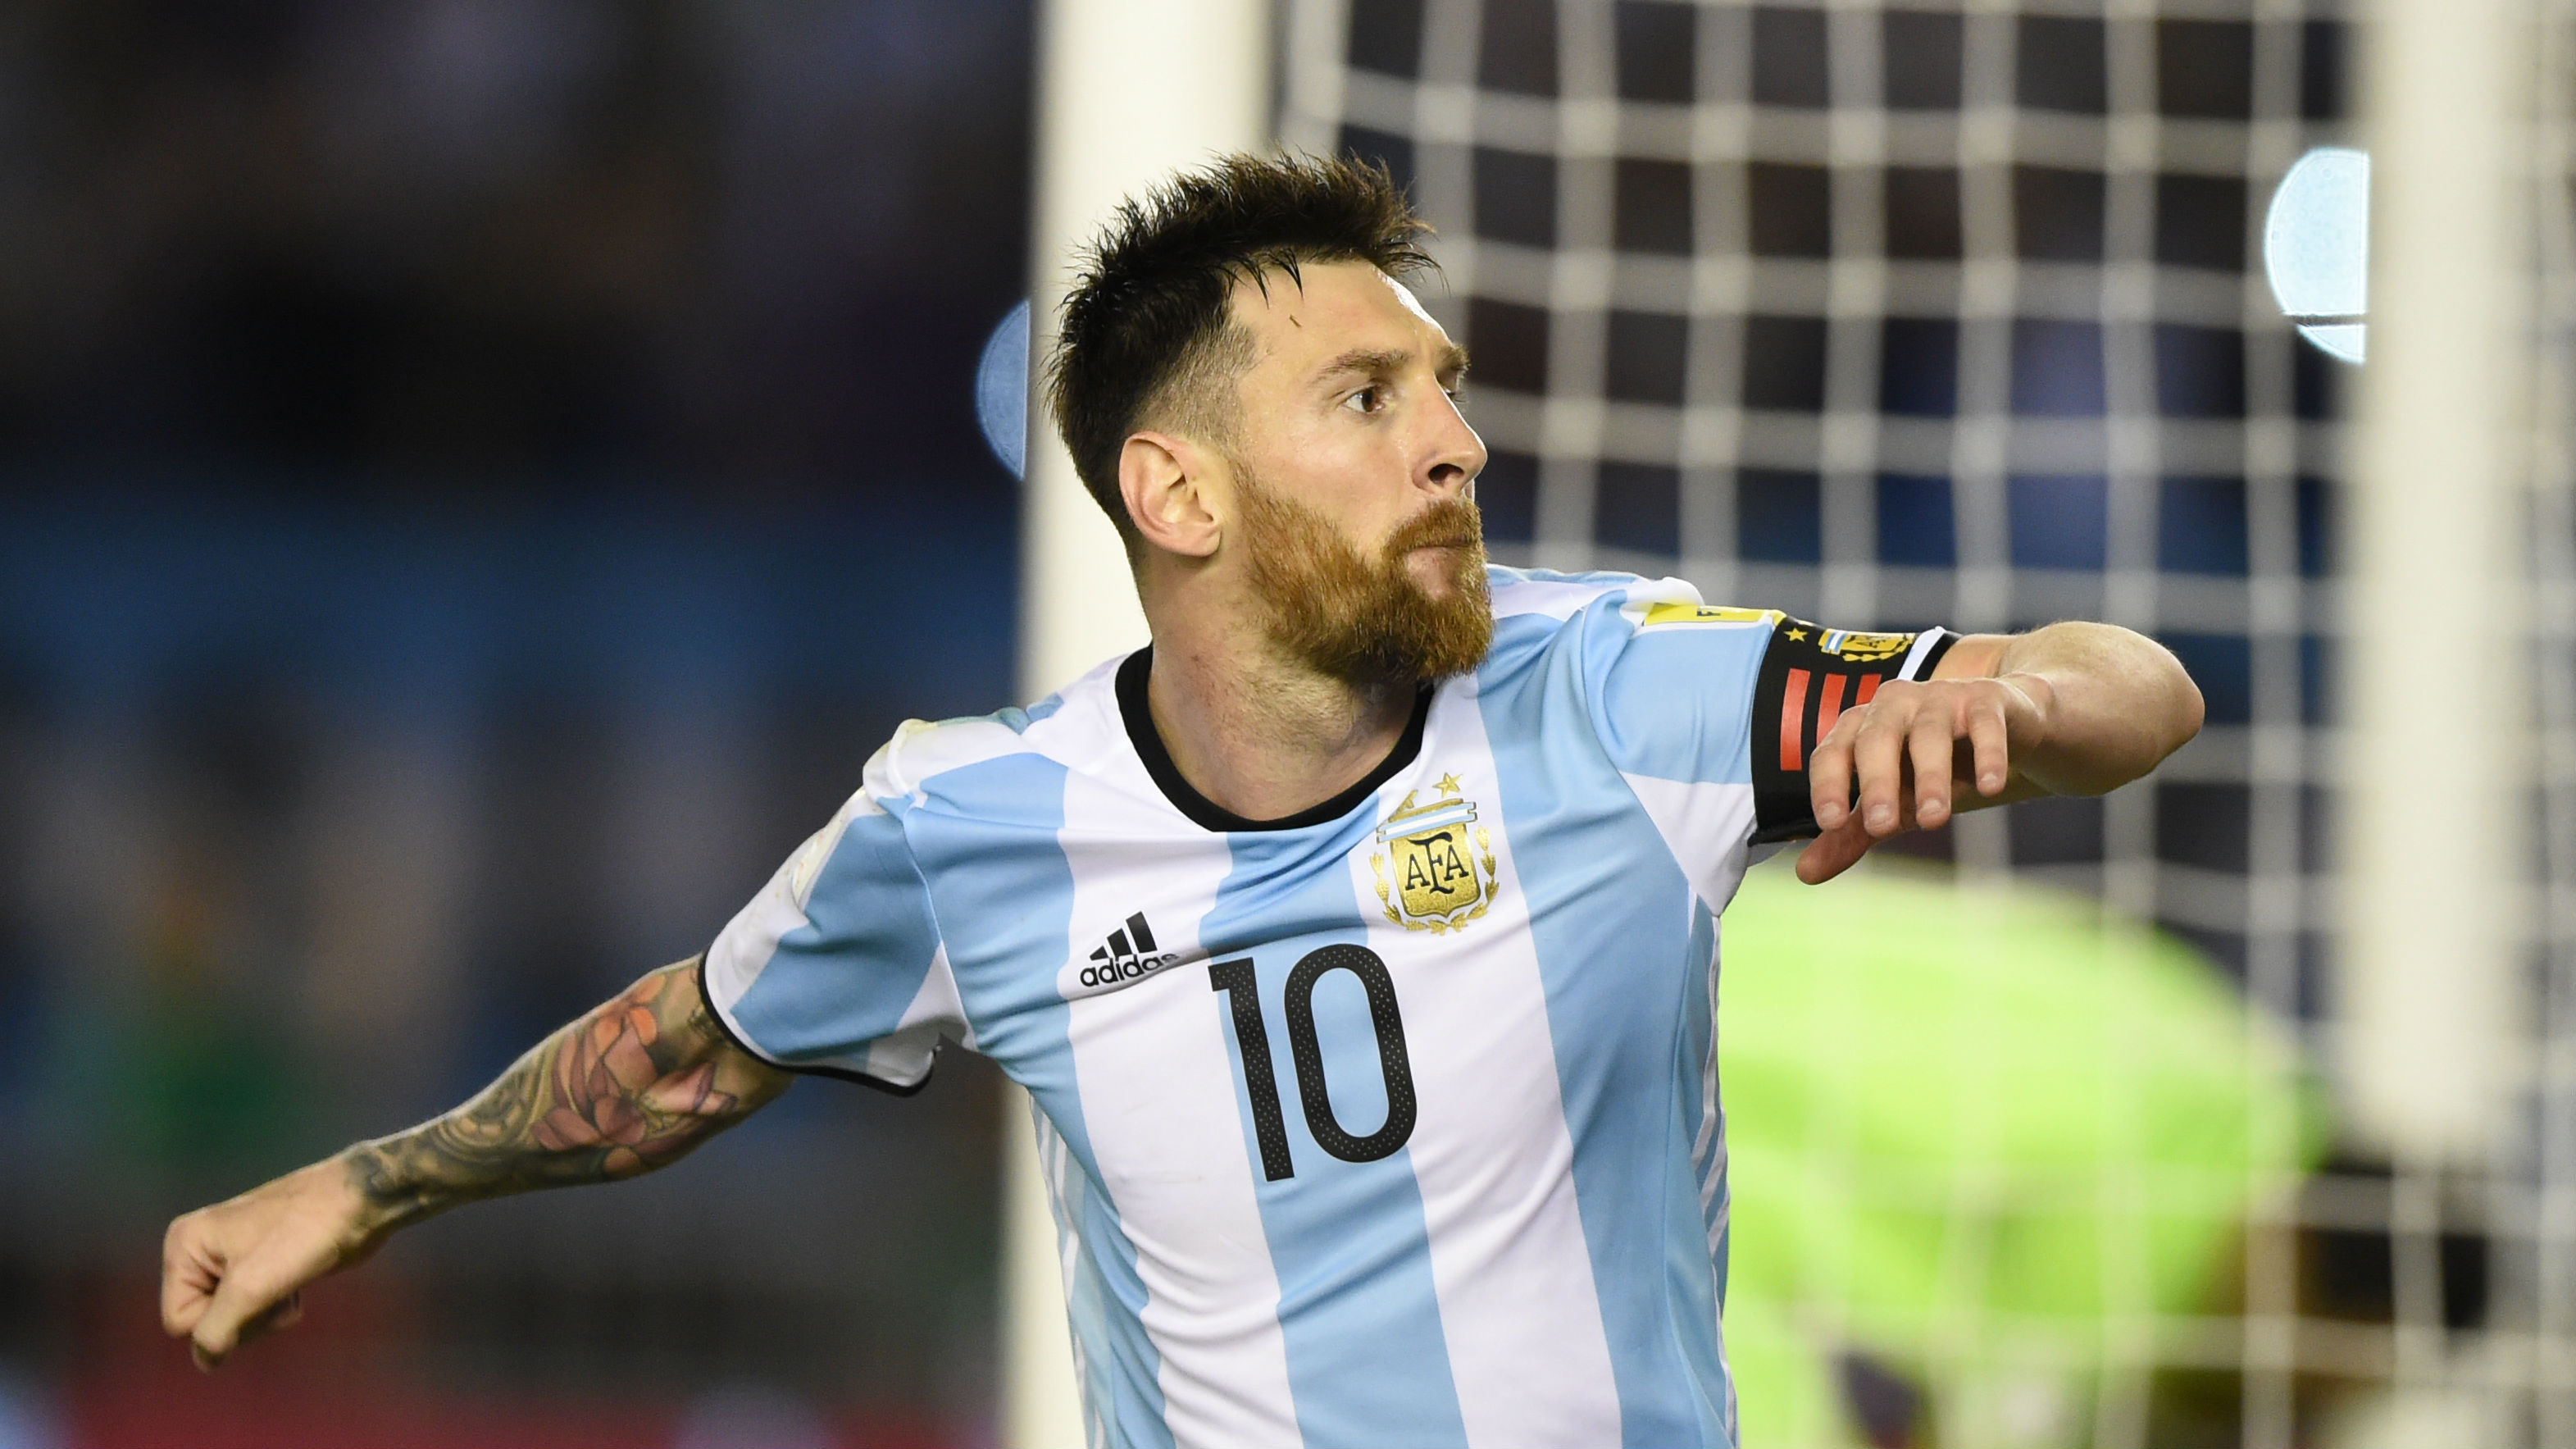 Photo of Argentina Release 22-man Squad List Including Messi, Aguero And Dybala Ahead of Nigeria Friendly Match